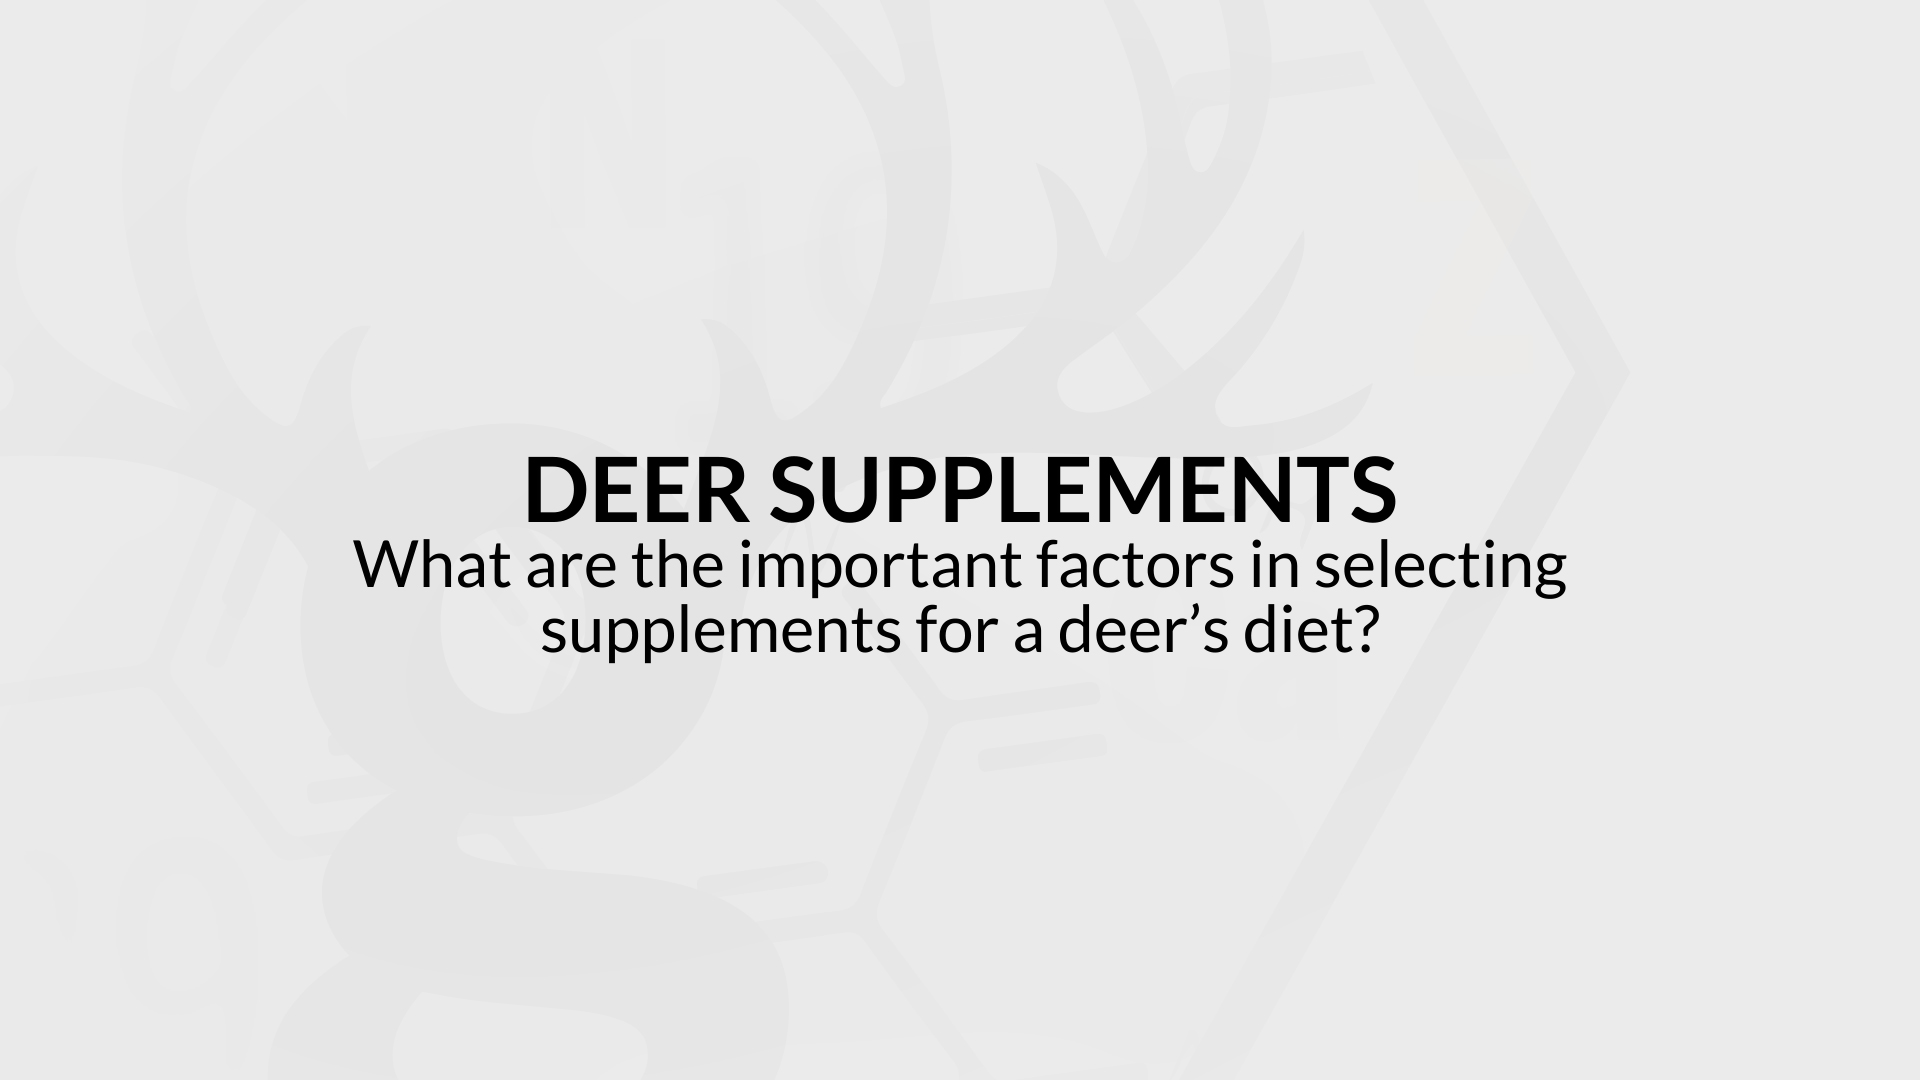 What are the important factors in selecting supplements for a deer's diet?